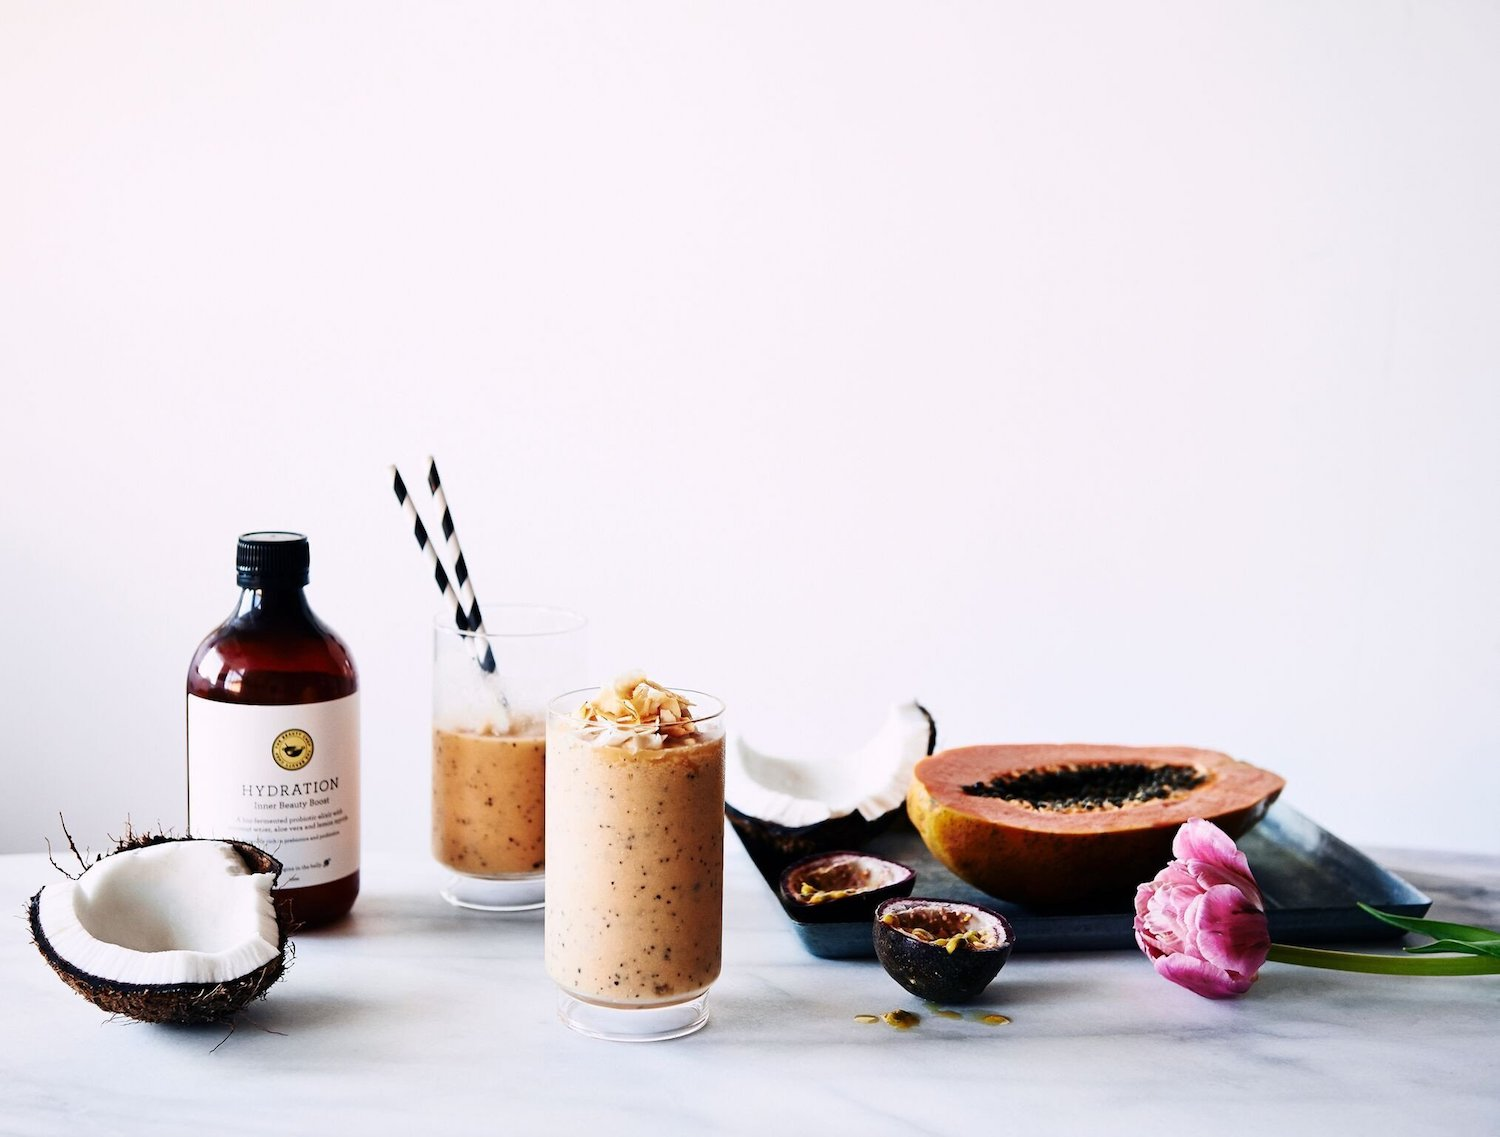 6 Edible Beauty Brands Nourishing Your Body From the Inside Out